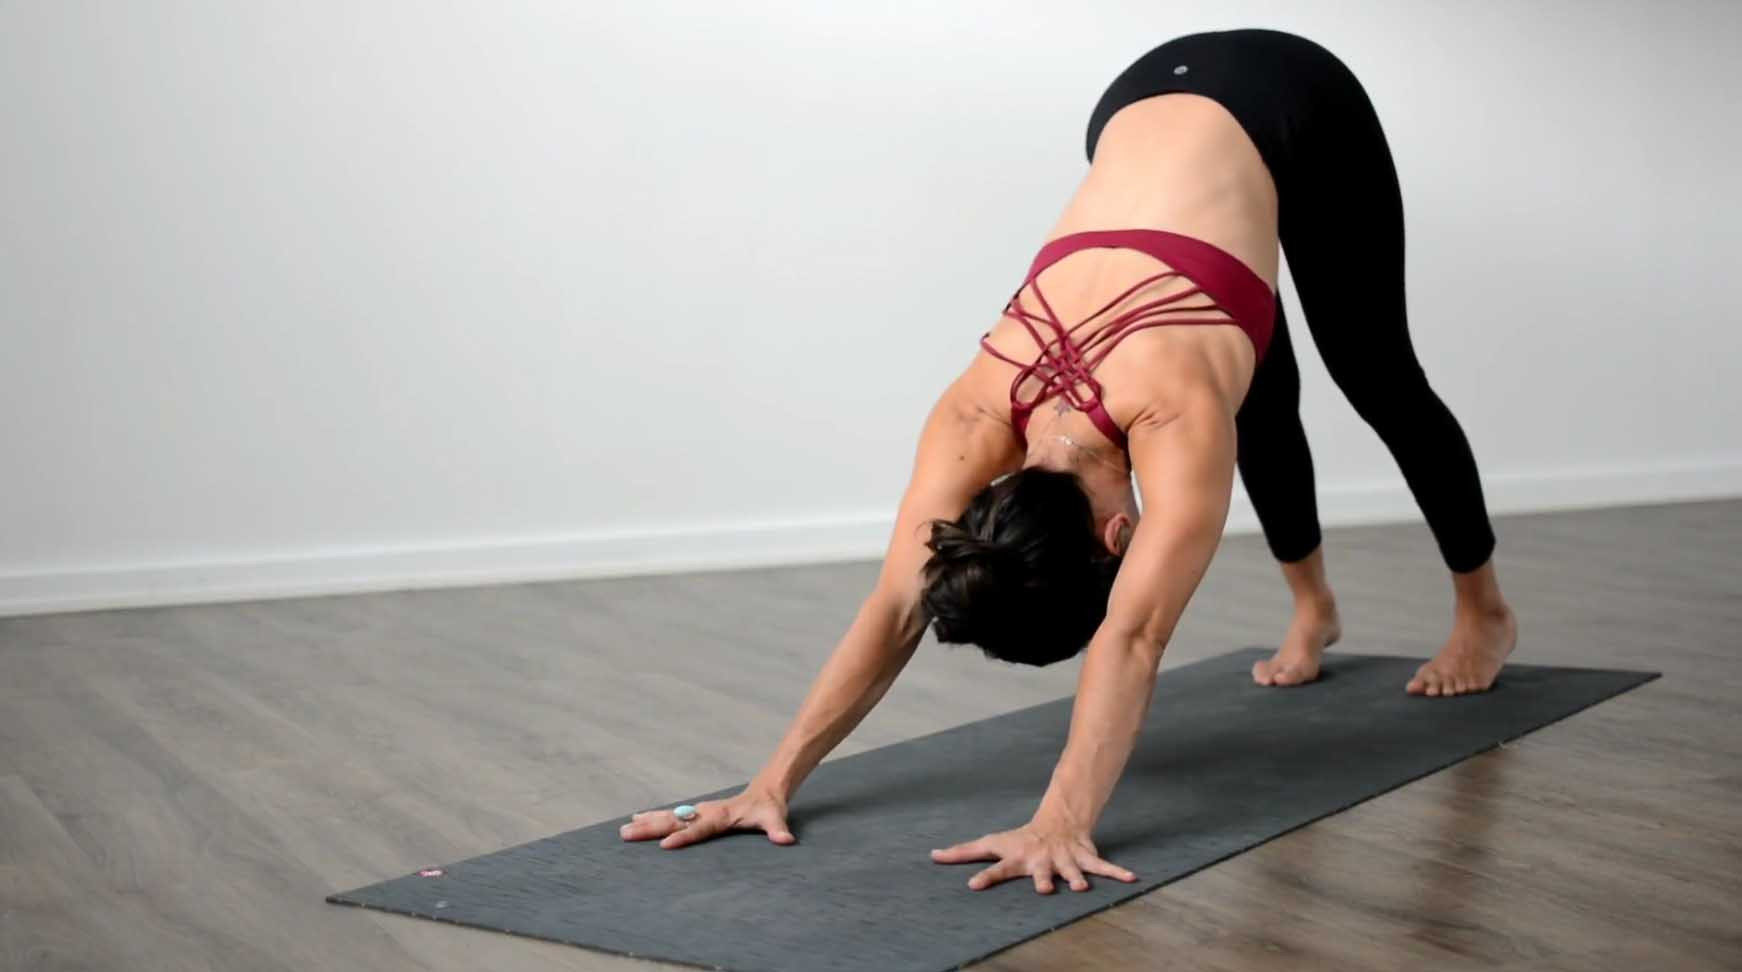 Arm position - Downward facing dog